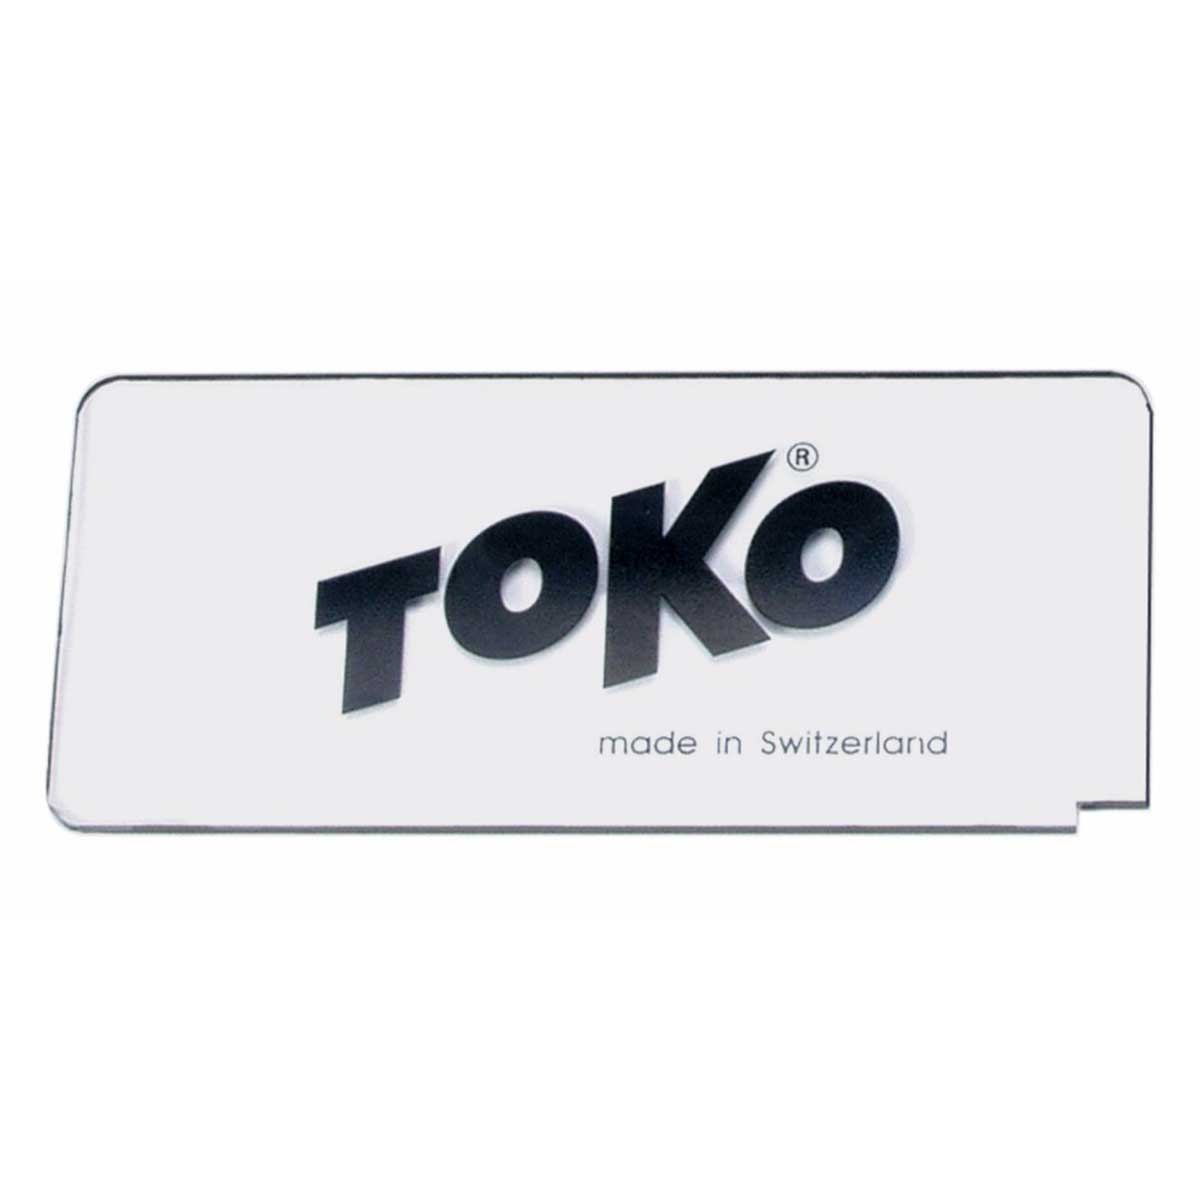 Toko Plexi Blade - 5mm in Clear and Black